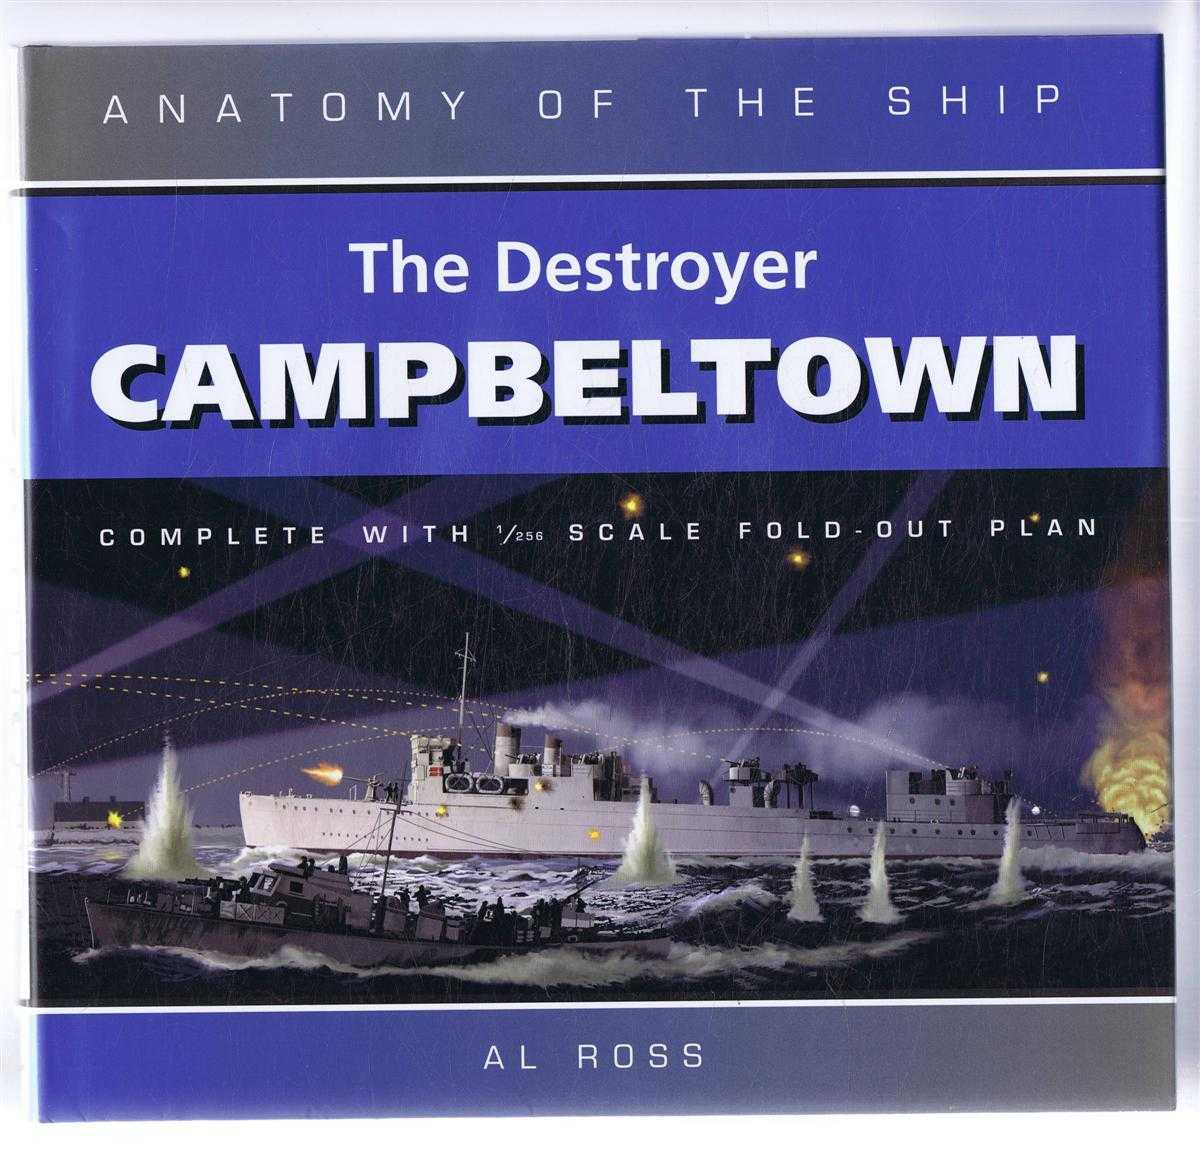 The Destroyer Campbeltown, Anatomy of the Ship, Al Ross